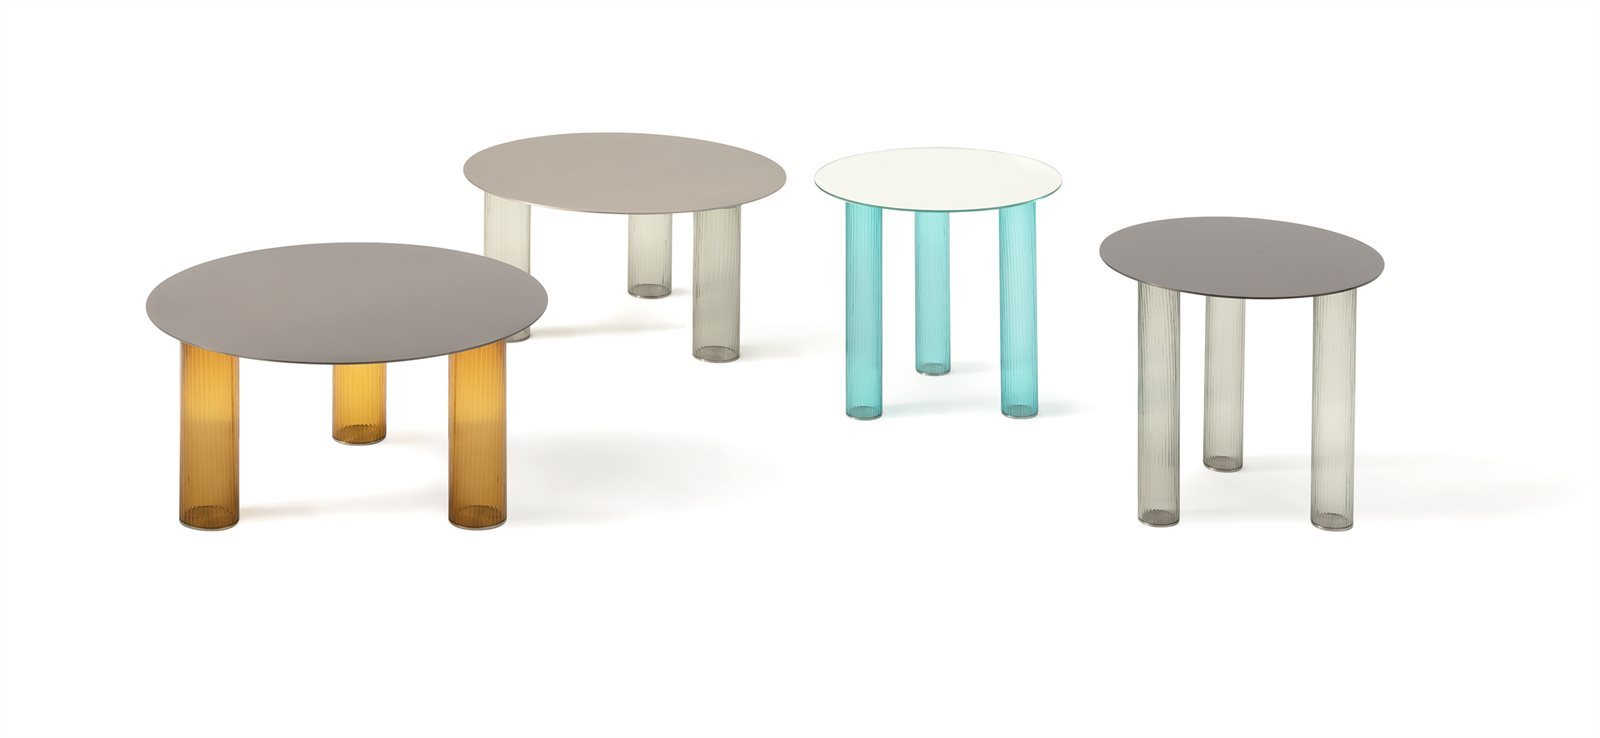 Zanotta Design's summer novelties